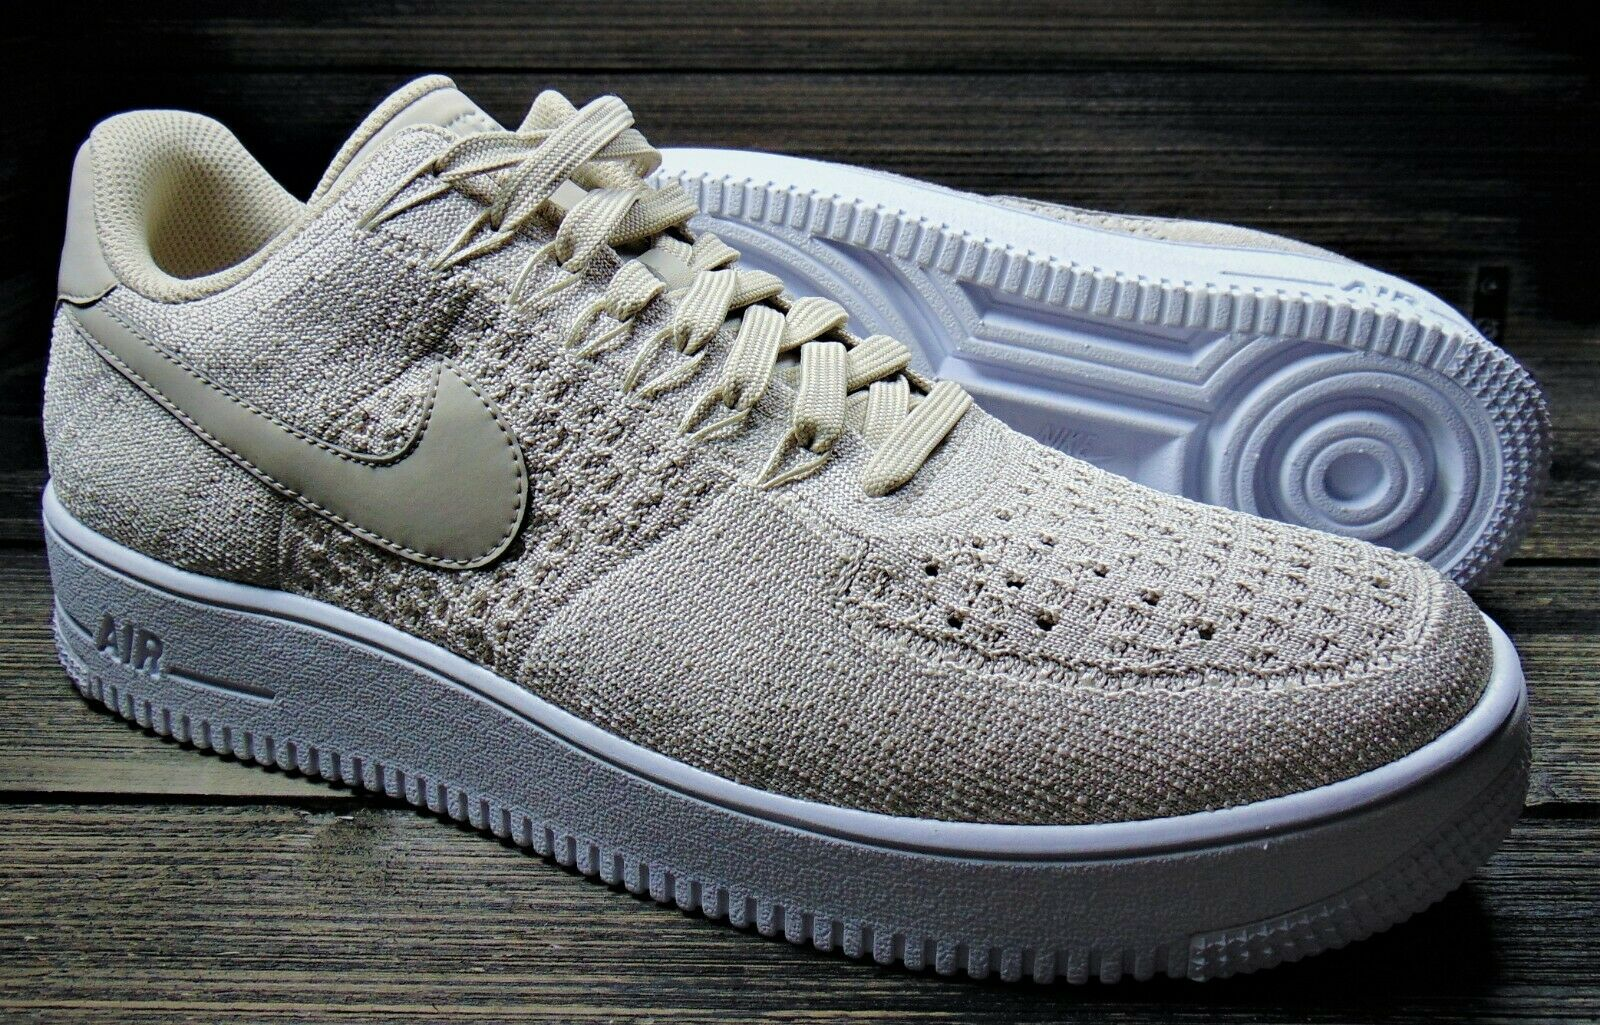 NIKE MEN'S AF1 ULTRA FLYKNIT LOW STRING WHITE TRAINERS   SZ 11.5   817419-200